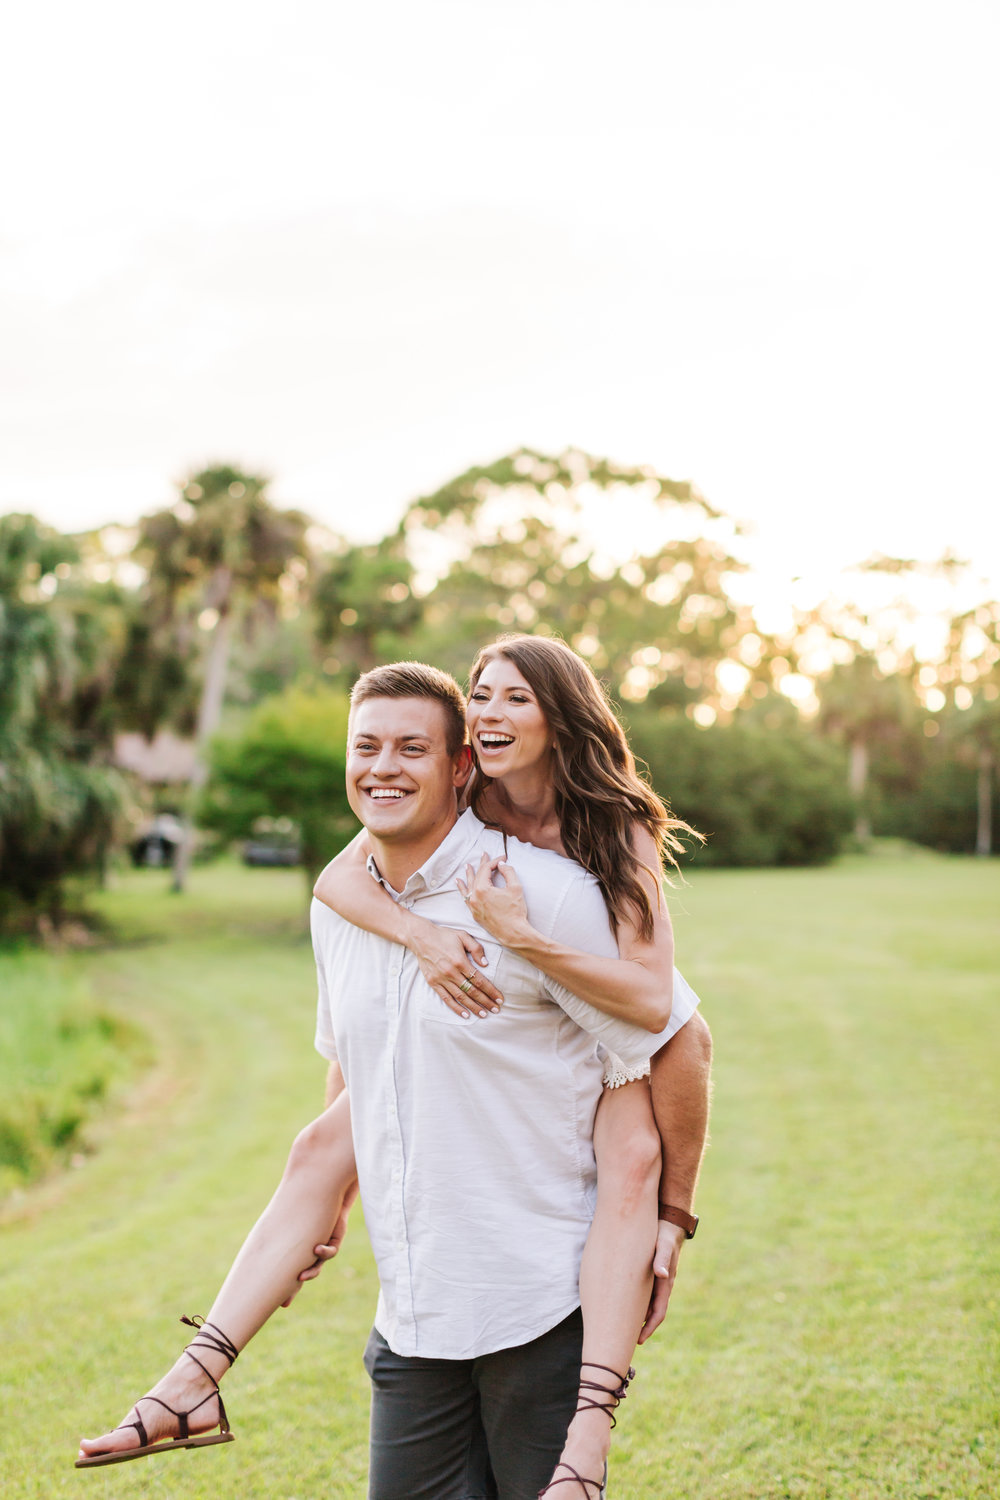 2018.08.10 Jay and Lauren Engagement Elopement Session at Fox Lake Park Titusville THE HORNES-209.jpg